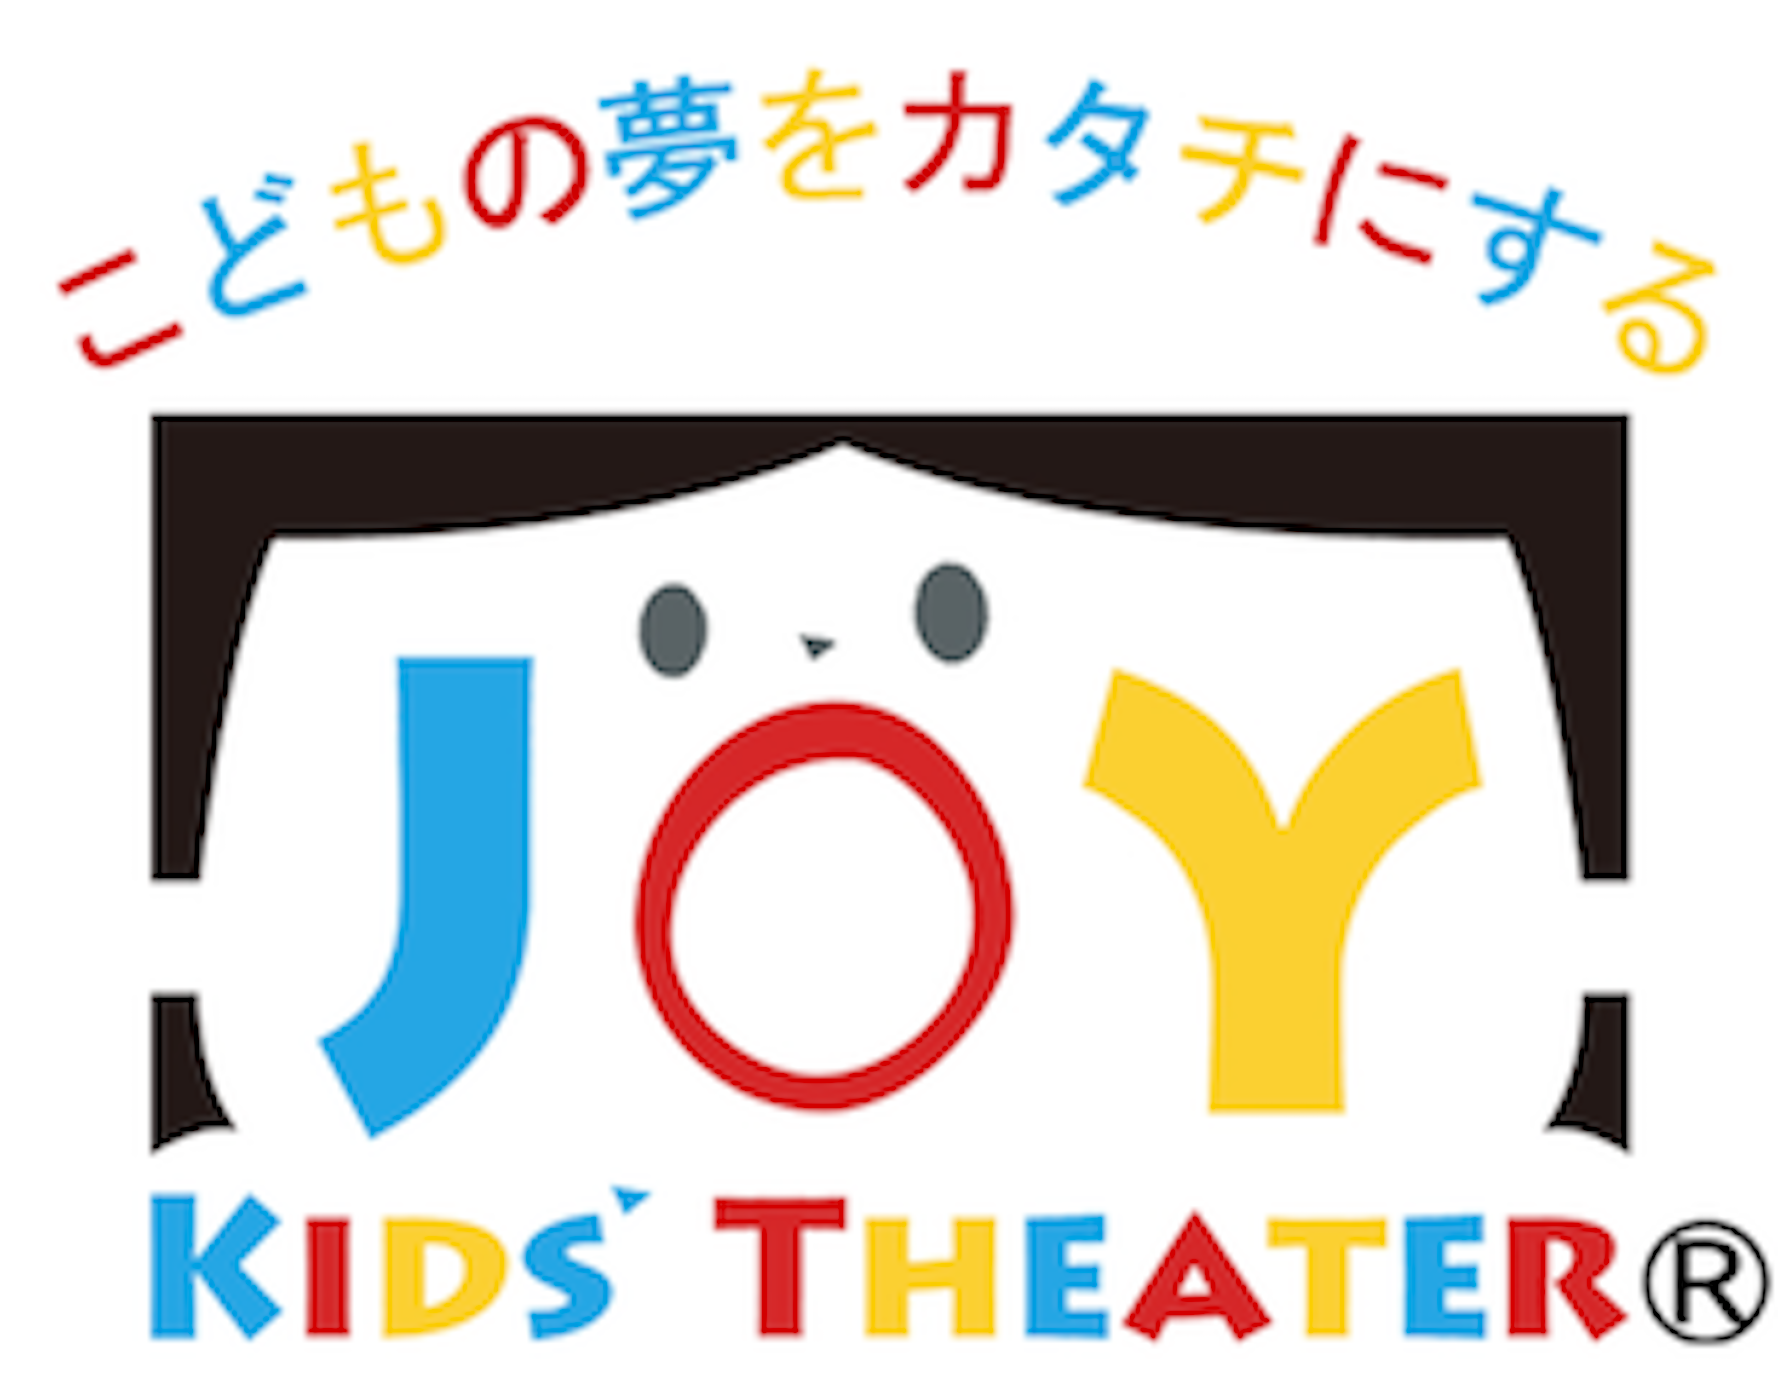 "「Broadway Musical Library #3」& 東京都推奨演劇作品「道徳教育ミュージカル""転校生""」supported by 江東区教育委員会"